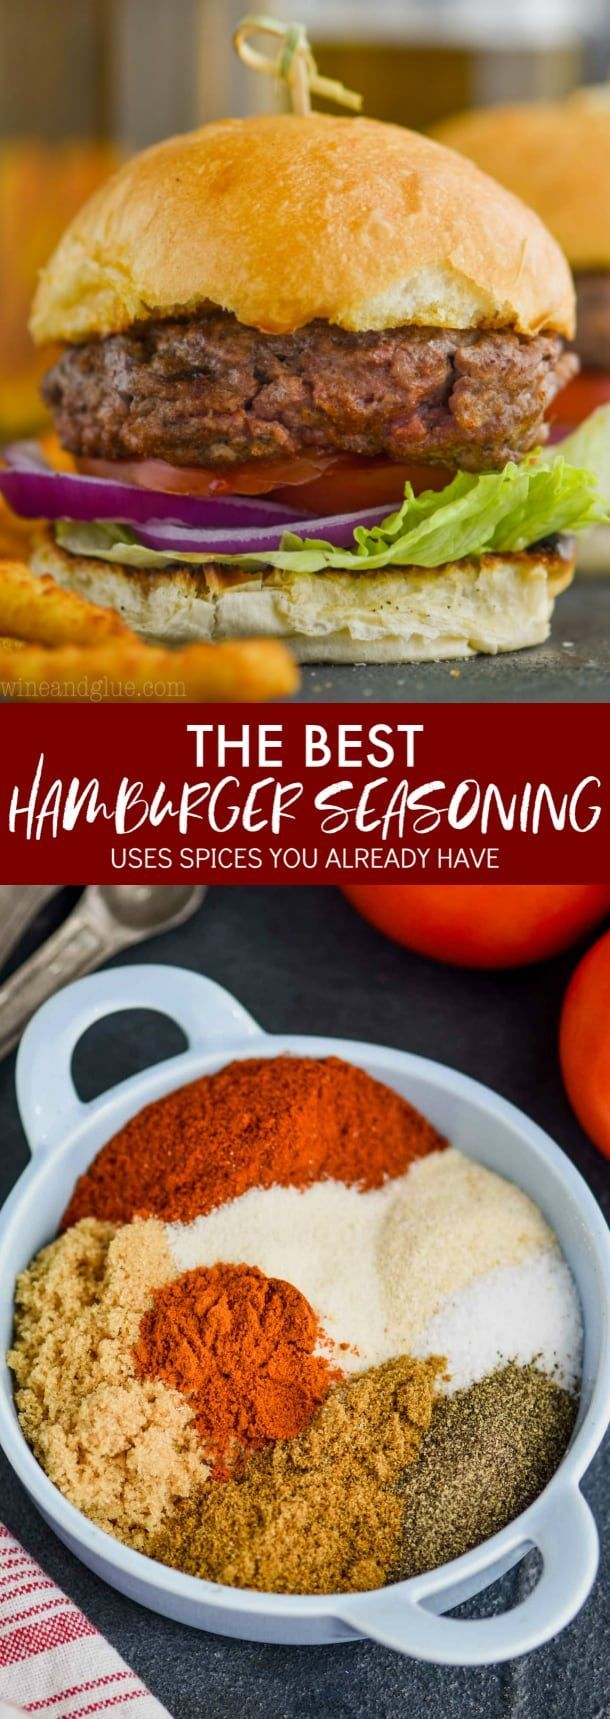 This Hamburger Seasoning Comes Together With Simple Ingredients That You Can Already Find In Your P Burger Seasoning Best Hamburger Recipes Hamburger Seasoning